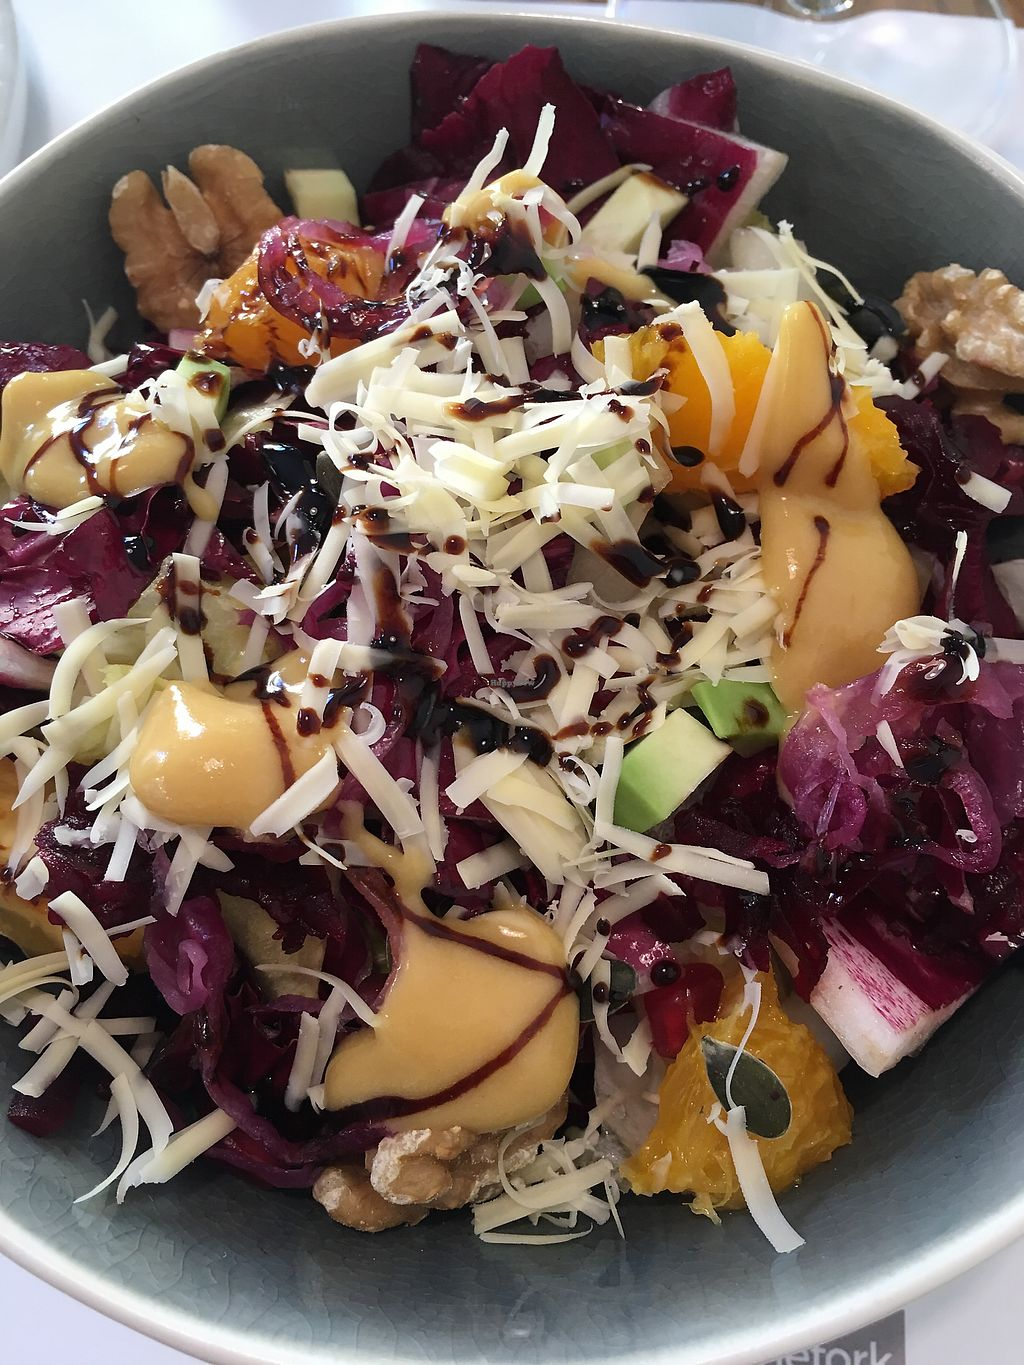 """Photo of Yum Nizza 1789  by <a href=""""/members/profile/hokusai77"""">hokusai77</a> <br/>Red salad with red chicory, onions, oranges, avocado, and vegan cheese <br/> March 22, 2018  - <a href='/contact/abuse/image/83863/374350'>Report</a>"""